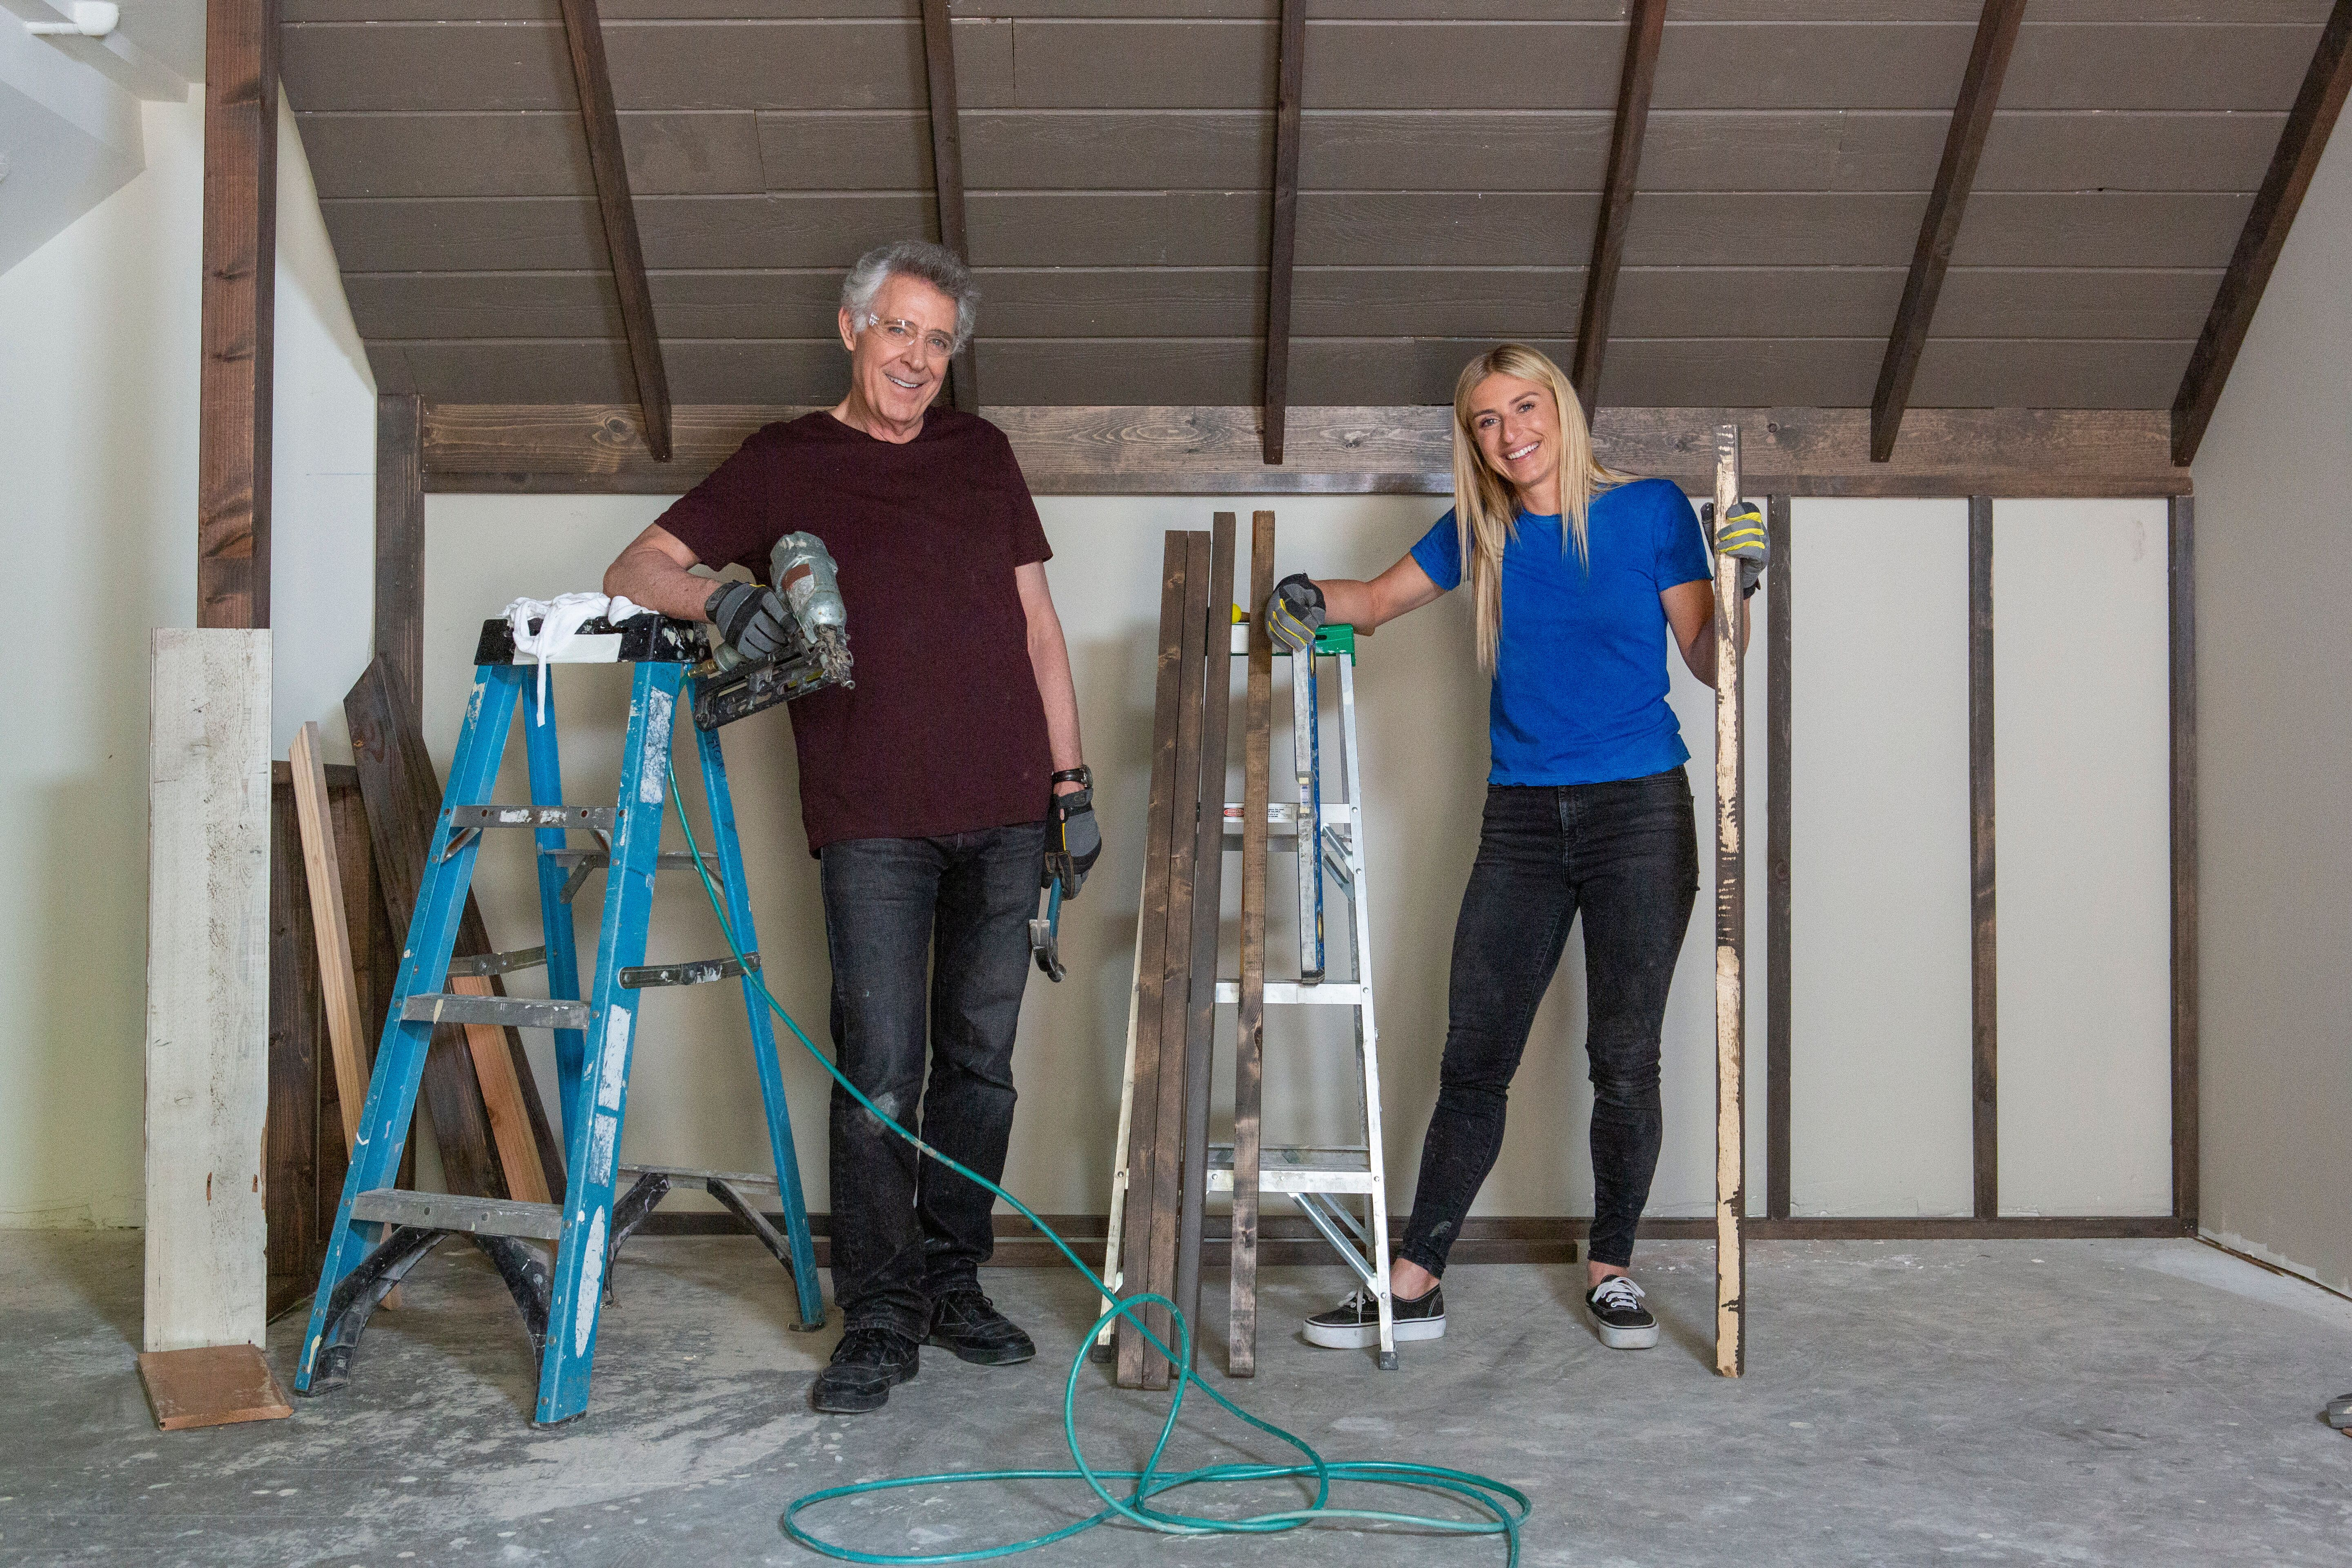 Barry Williams (Greg) and host Jasmine Roth pose after installing old wood planks, salvaged from the basement, to recreate th